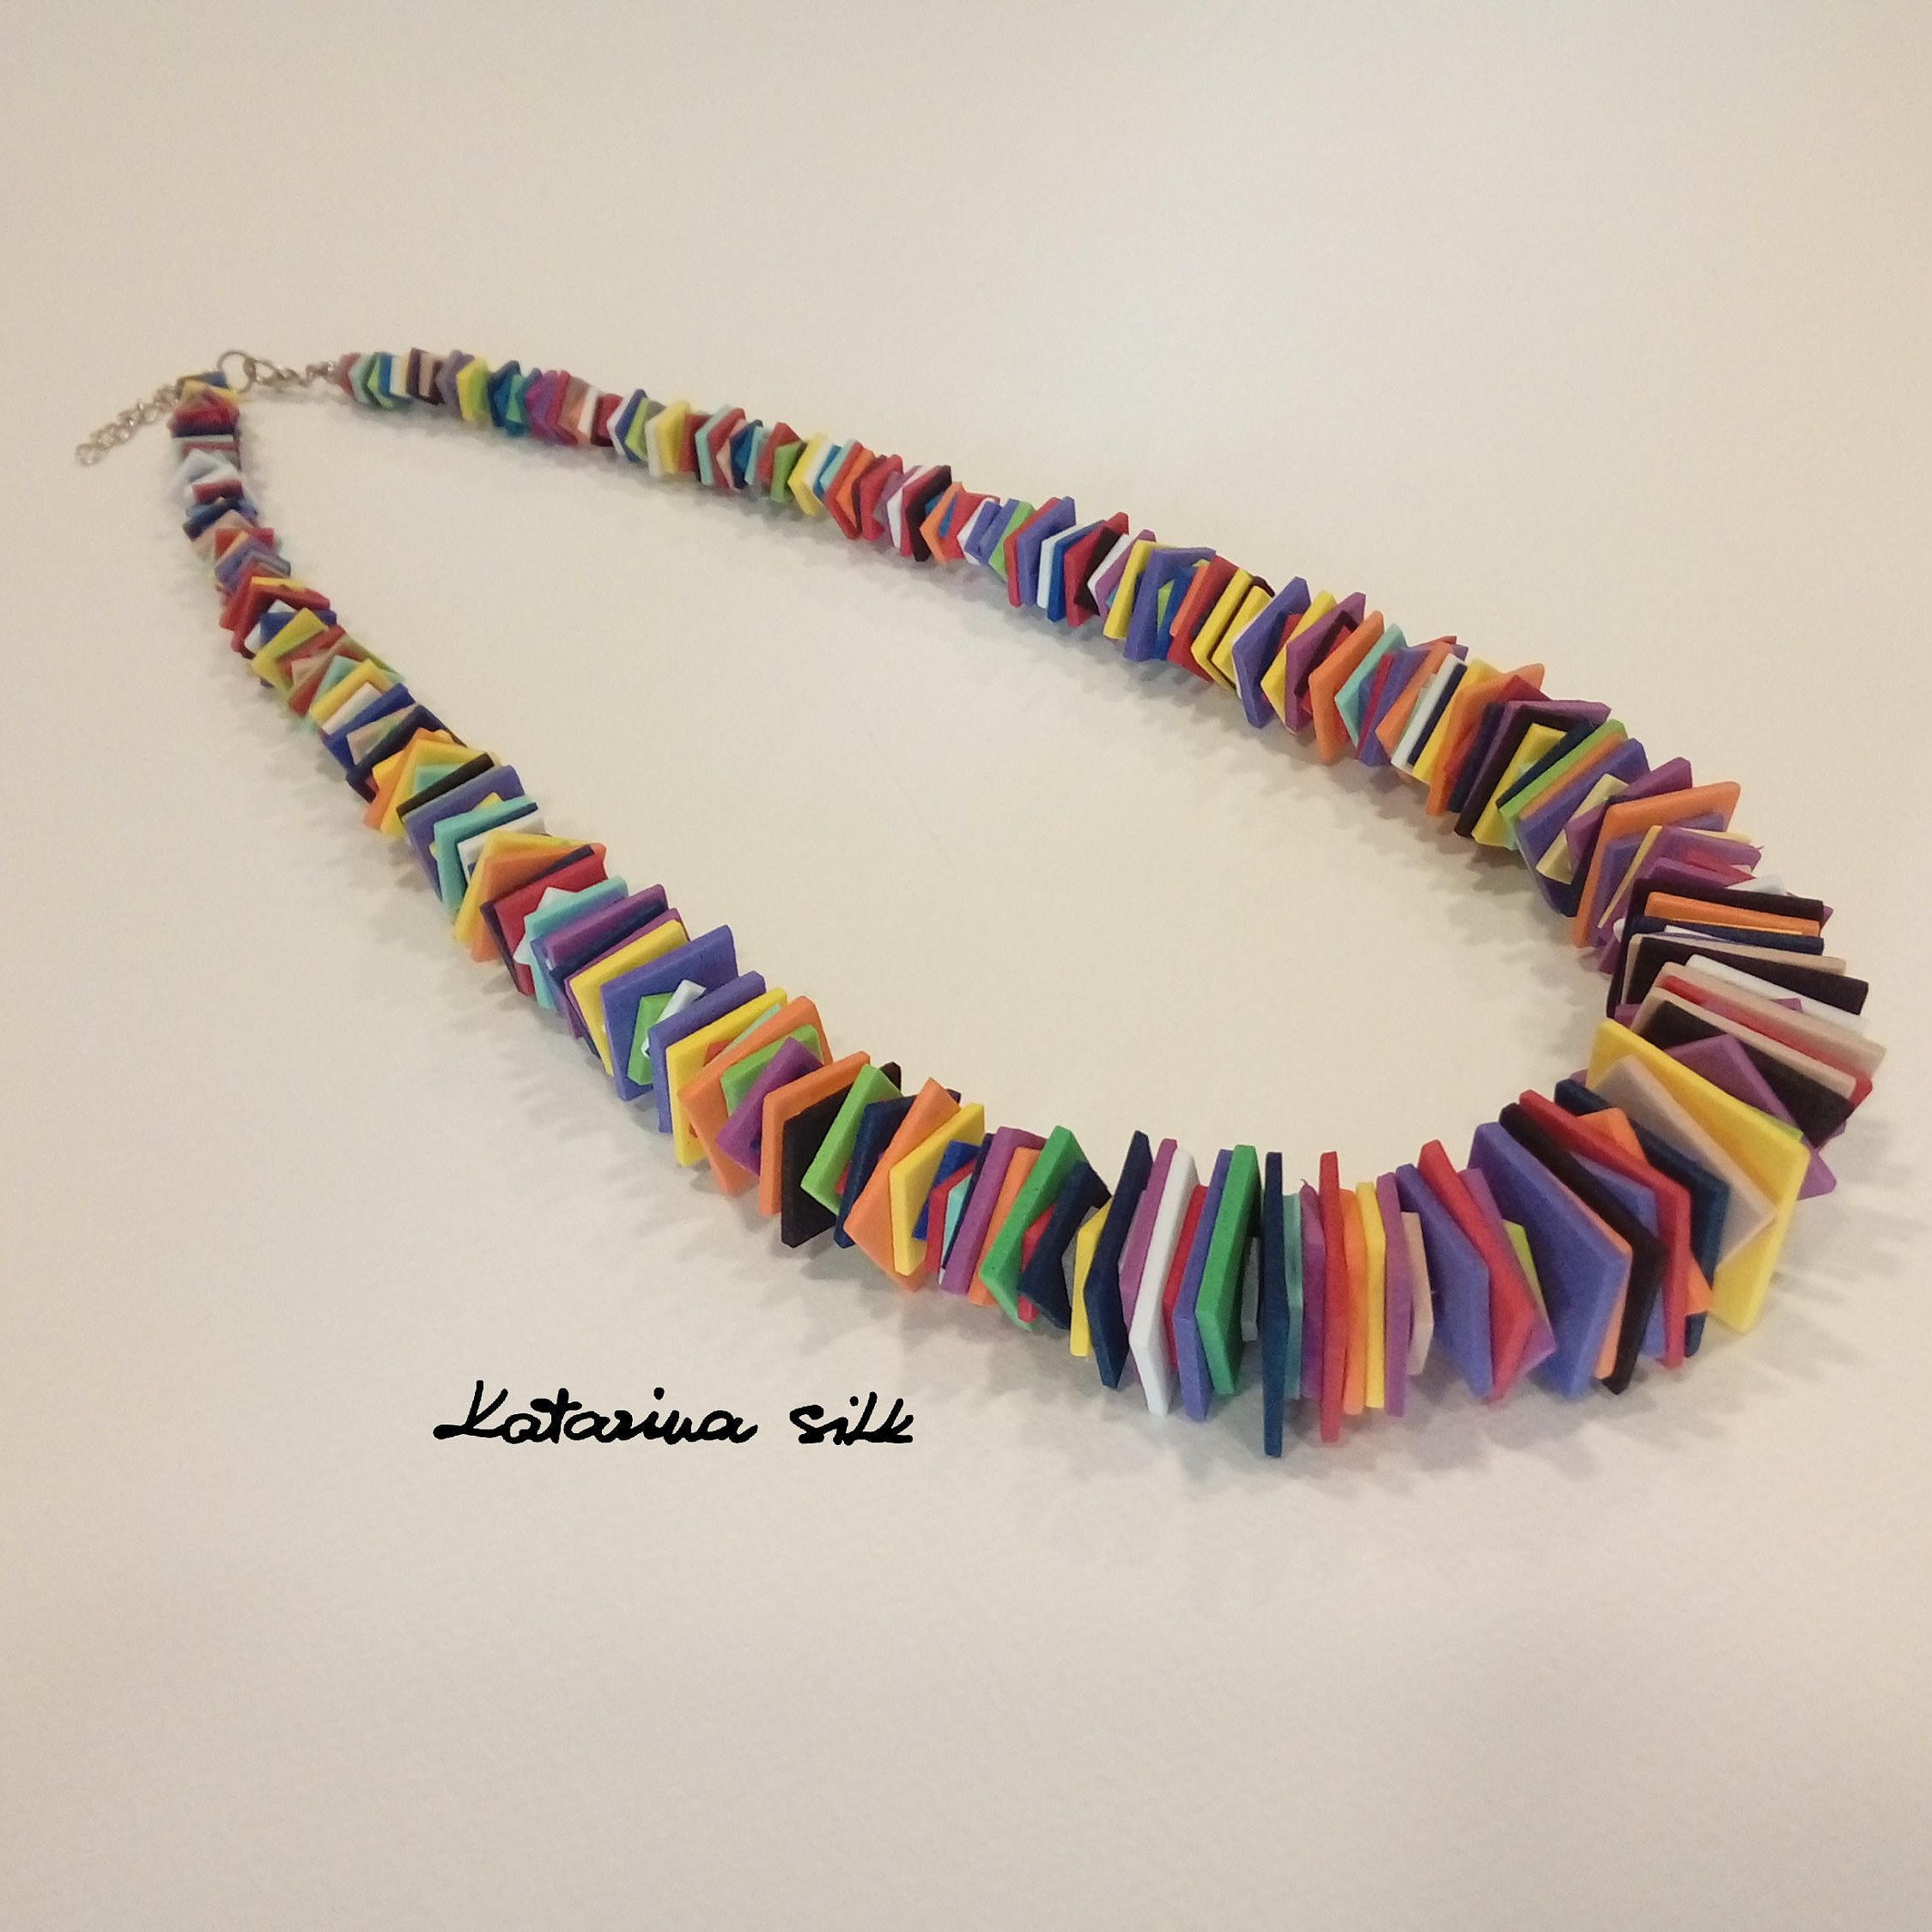 Statement Necklace Colorful Jewelry Star Necklace Chunky necklace Wood necklace Gift for her Unique jewelry Colorful Necklace art